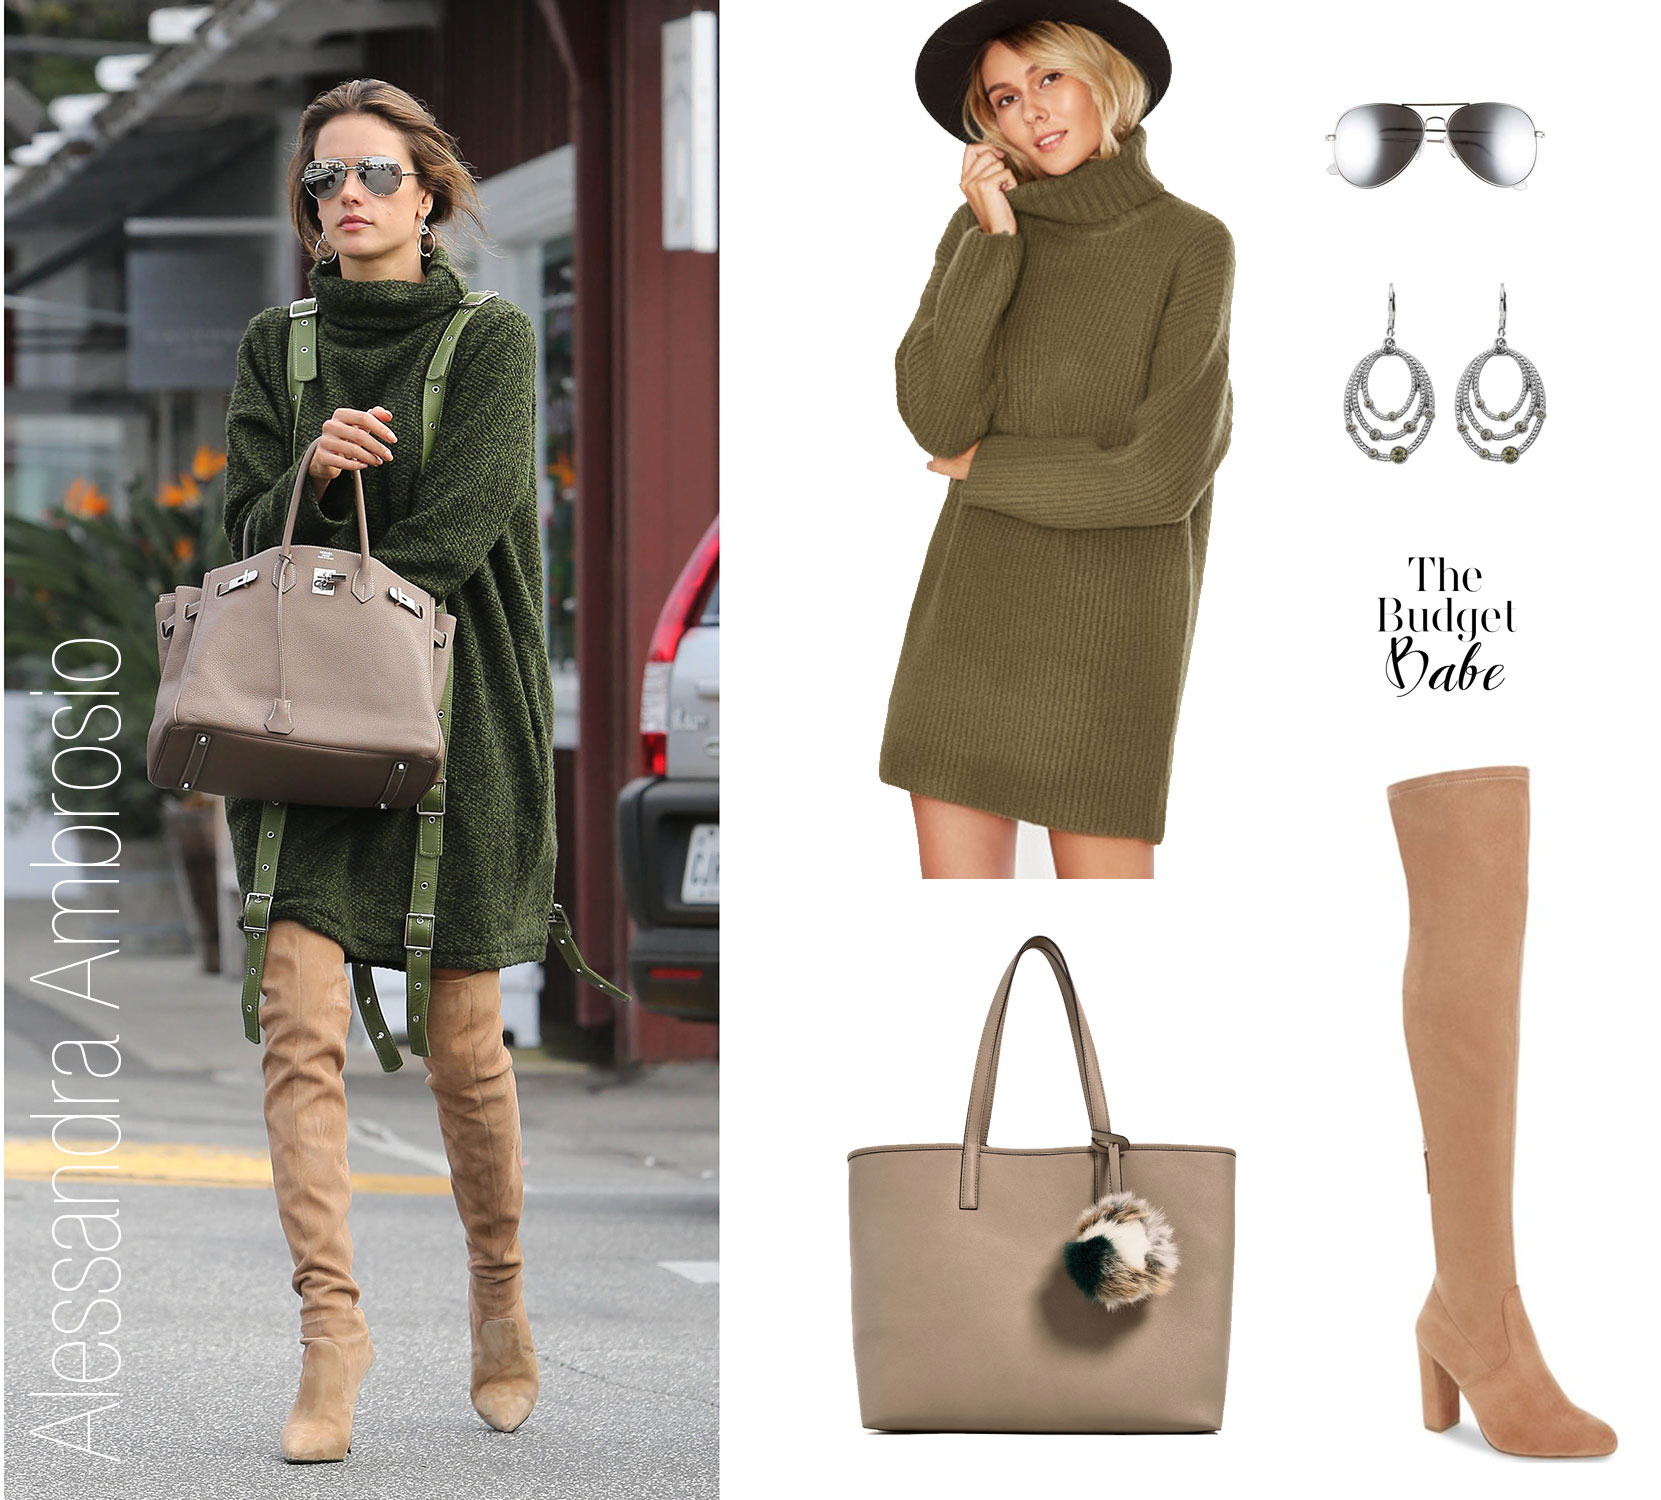 Shop Alessandra Ambrosio's turtleneck sweaterdress and over-the-knee boots look for less.